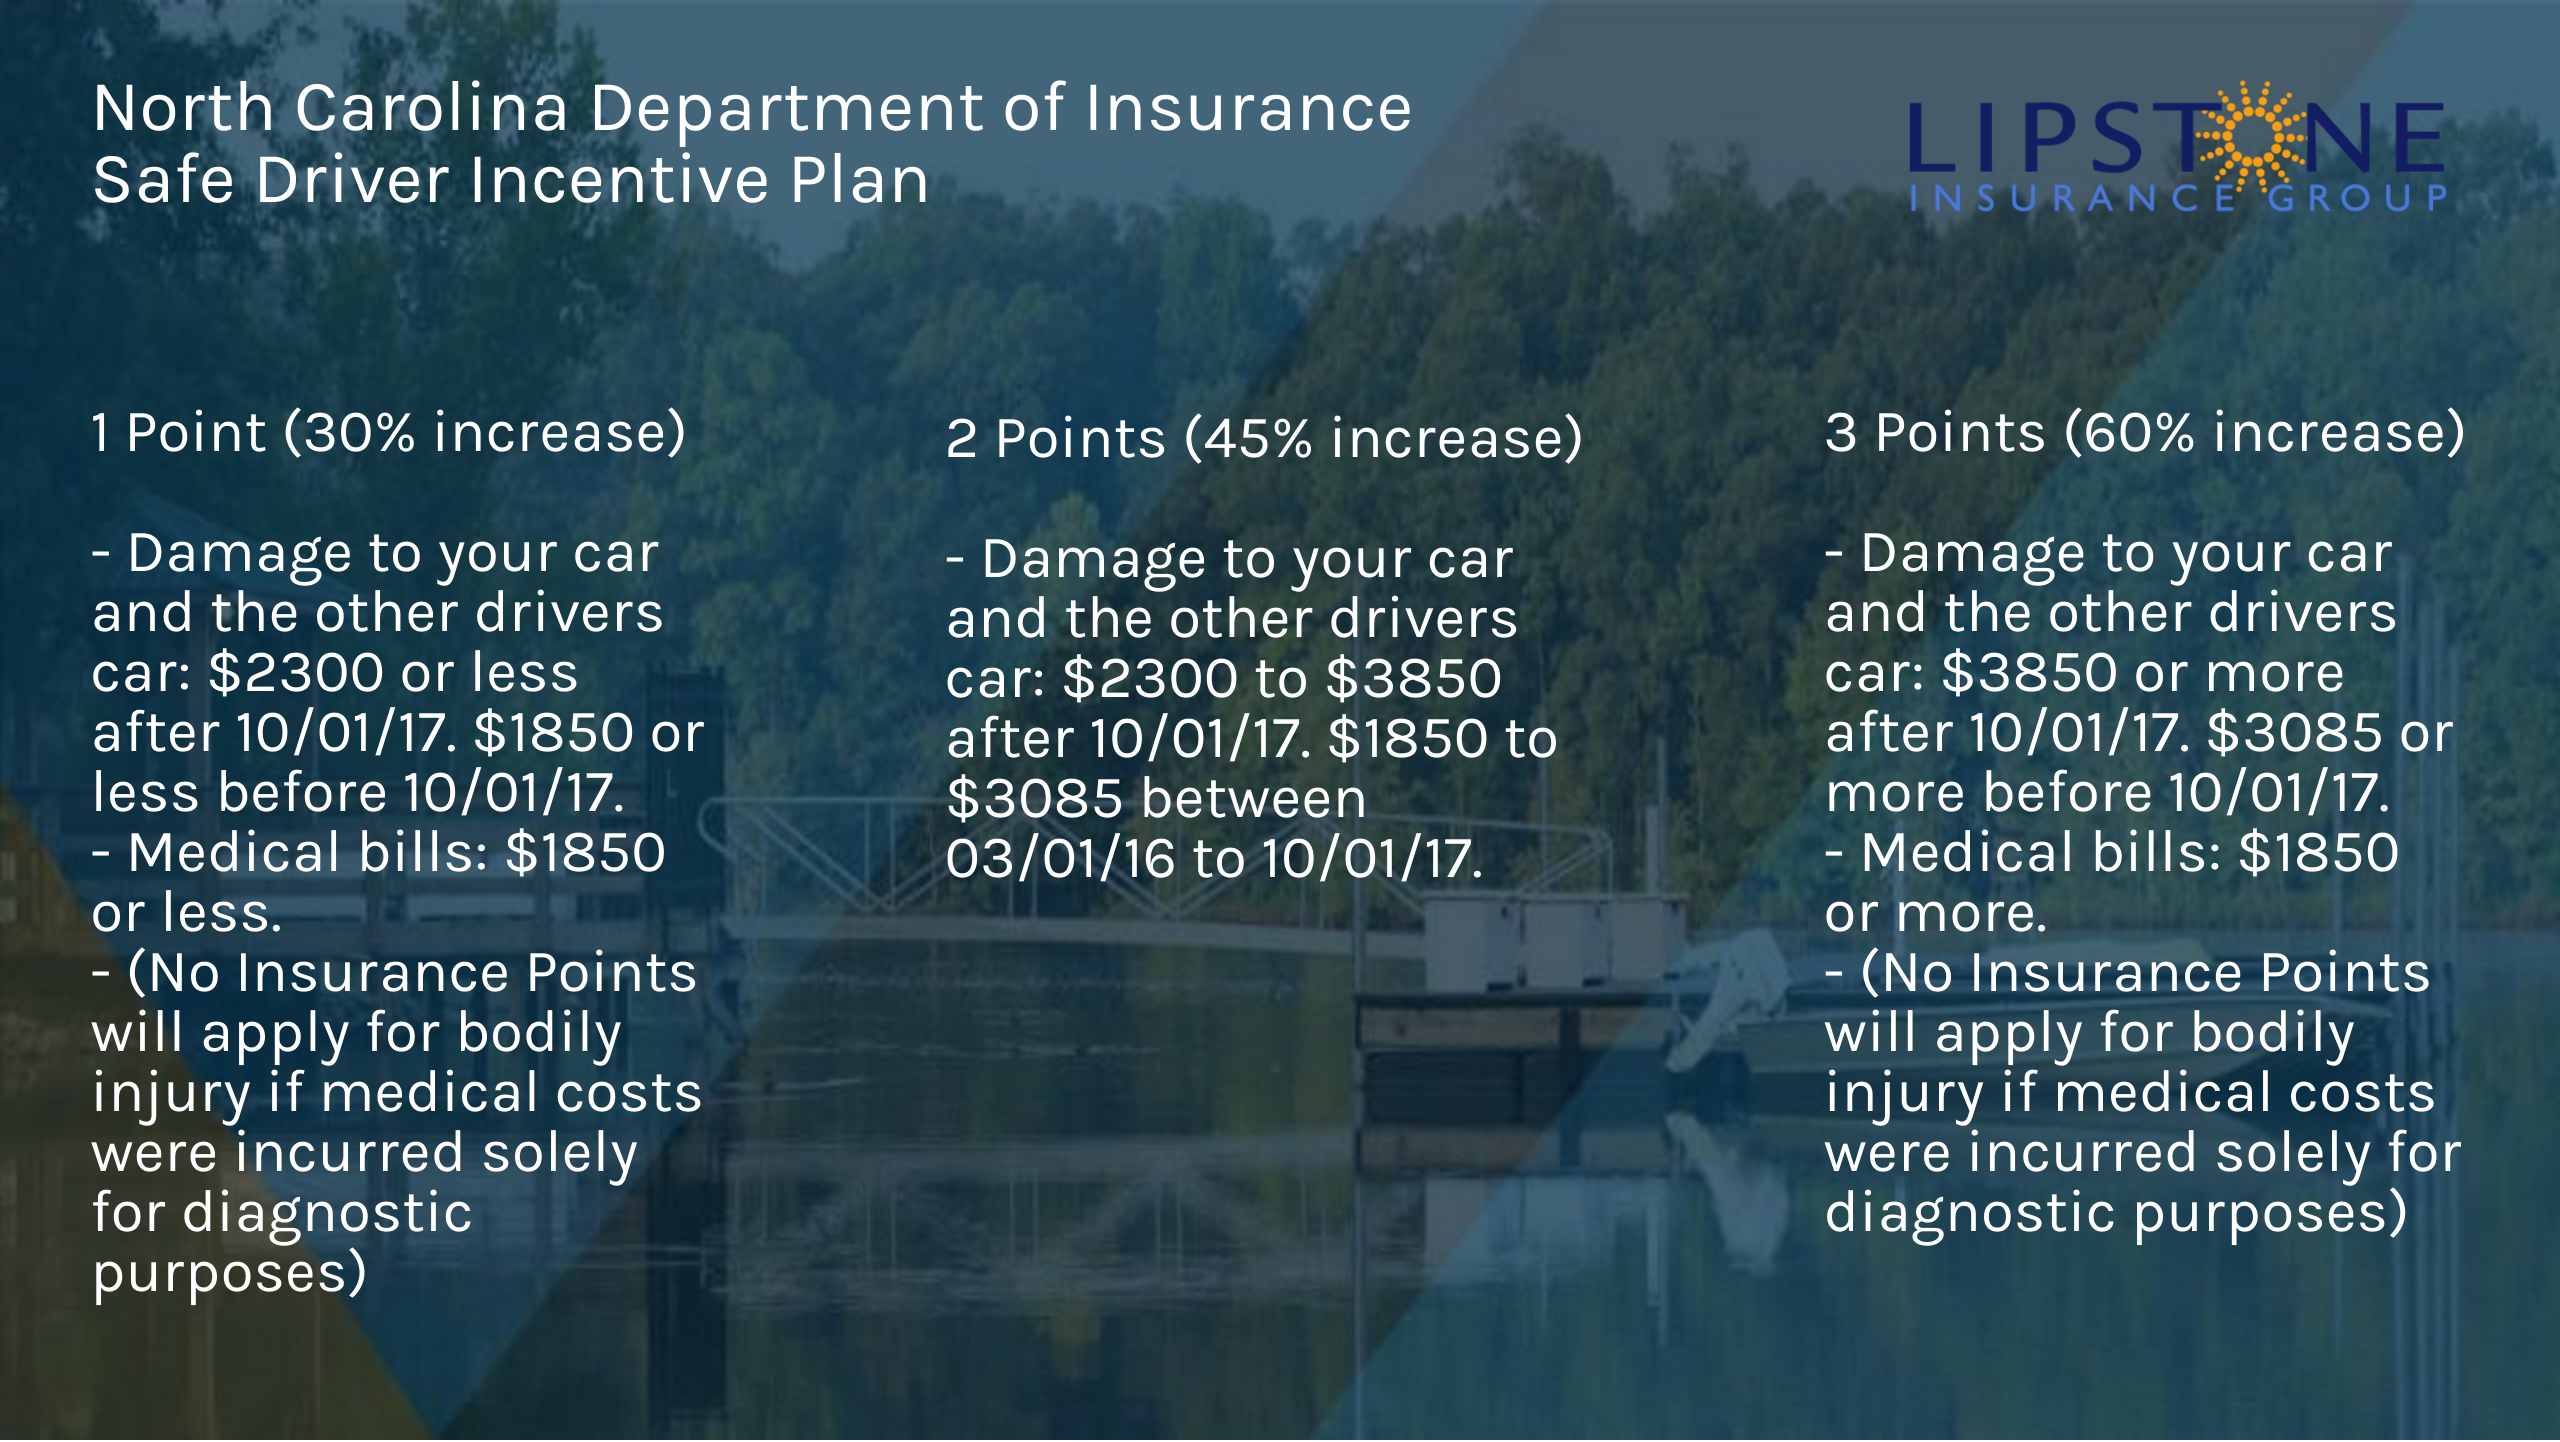 Will my North Carolina car insurance go up if I have an accident or